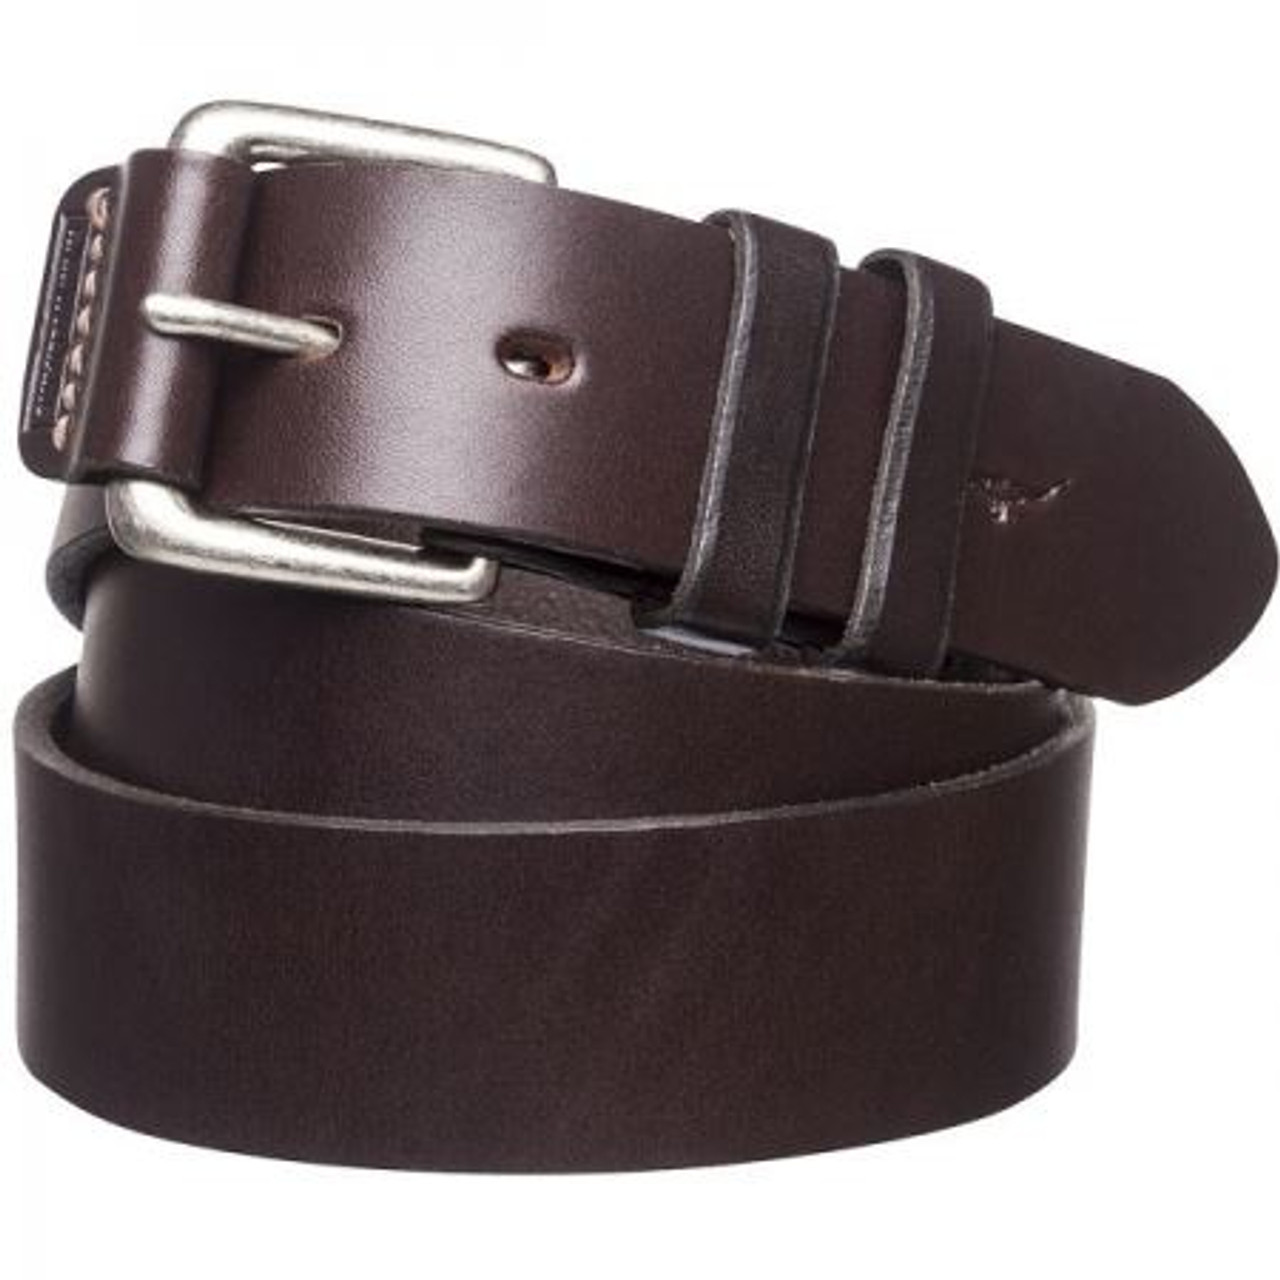 R.M. Williams Covered Buckle Belt